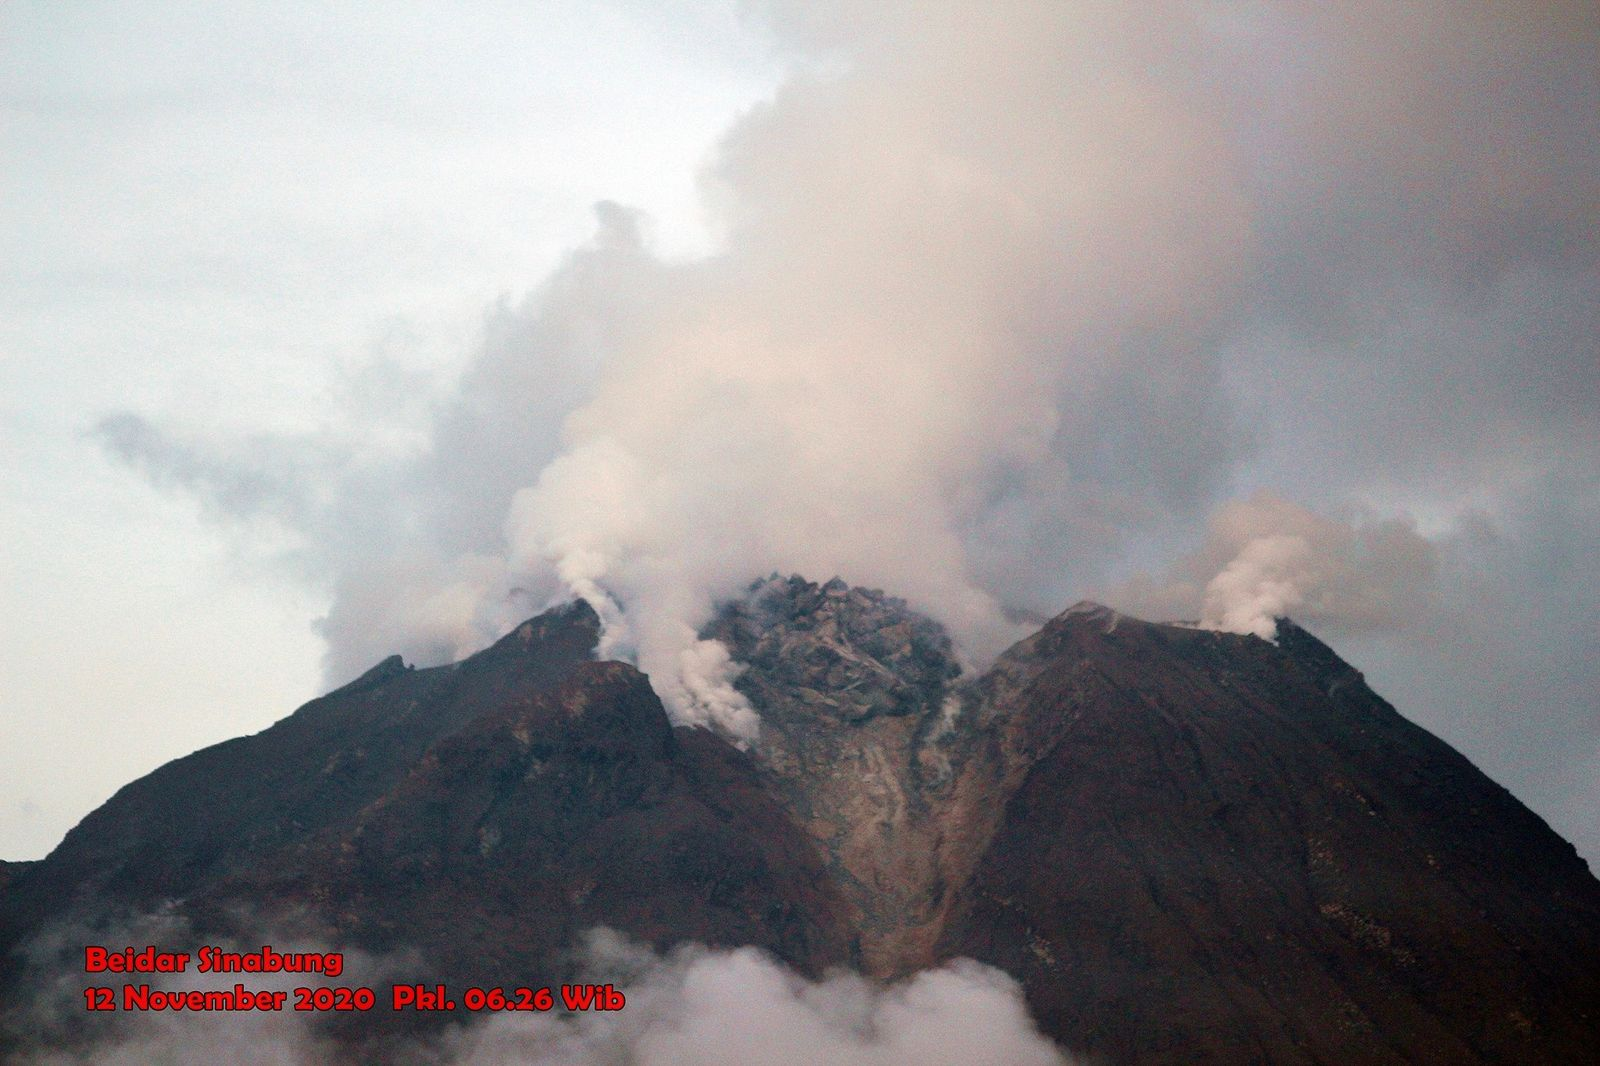 Sinabung - the growing dome - photo Firdaus Surbakti 12.11. 2020 / 6h26WIB - one click to enlarge